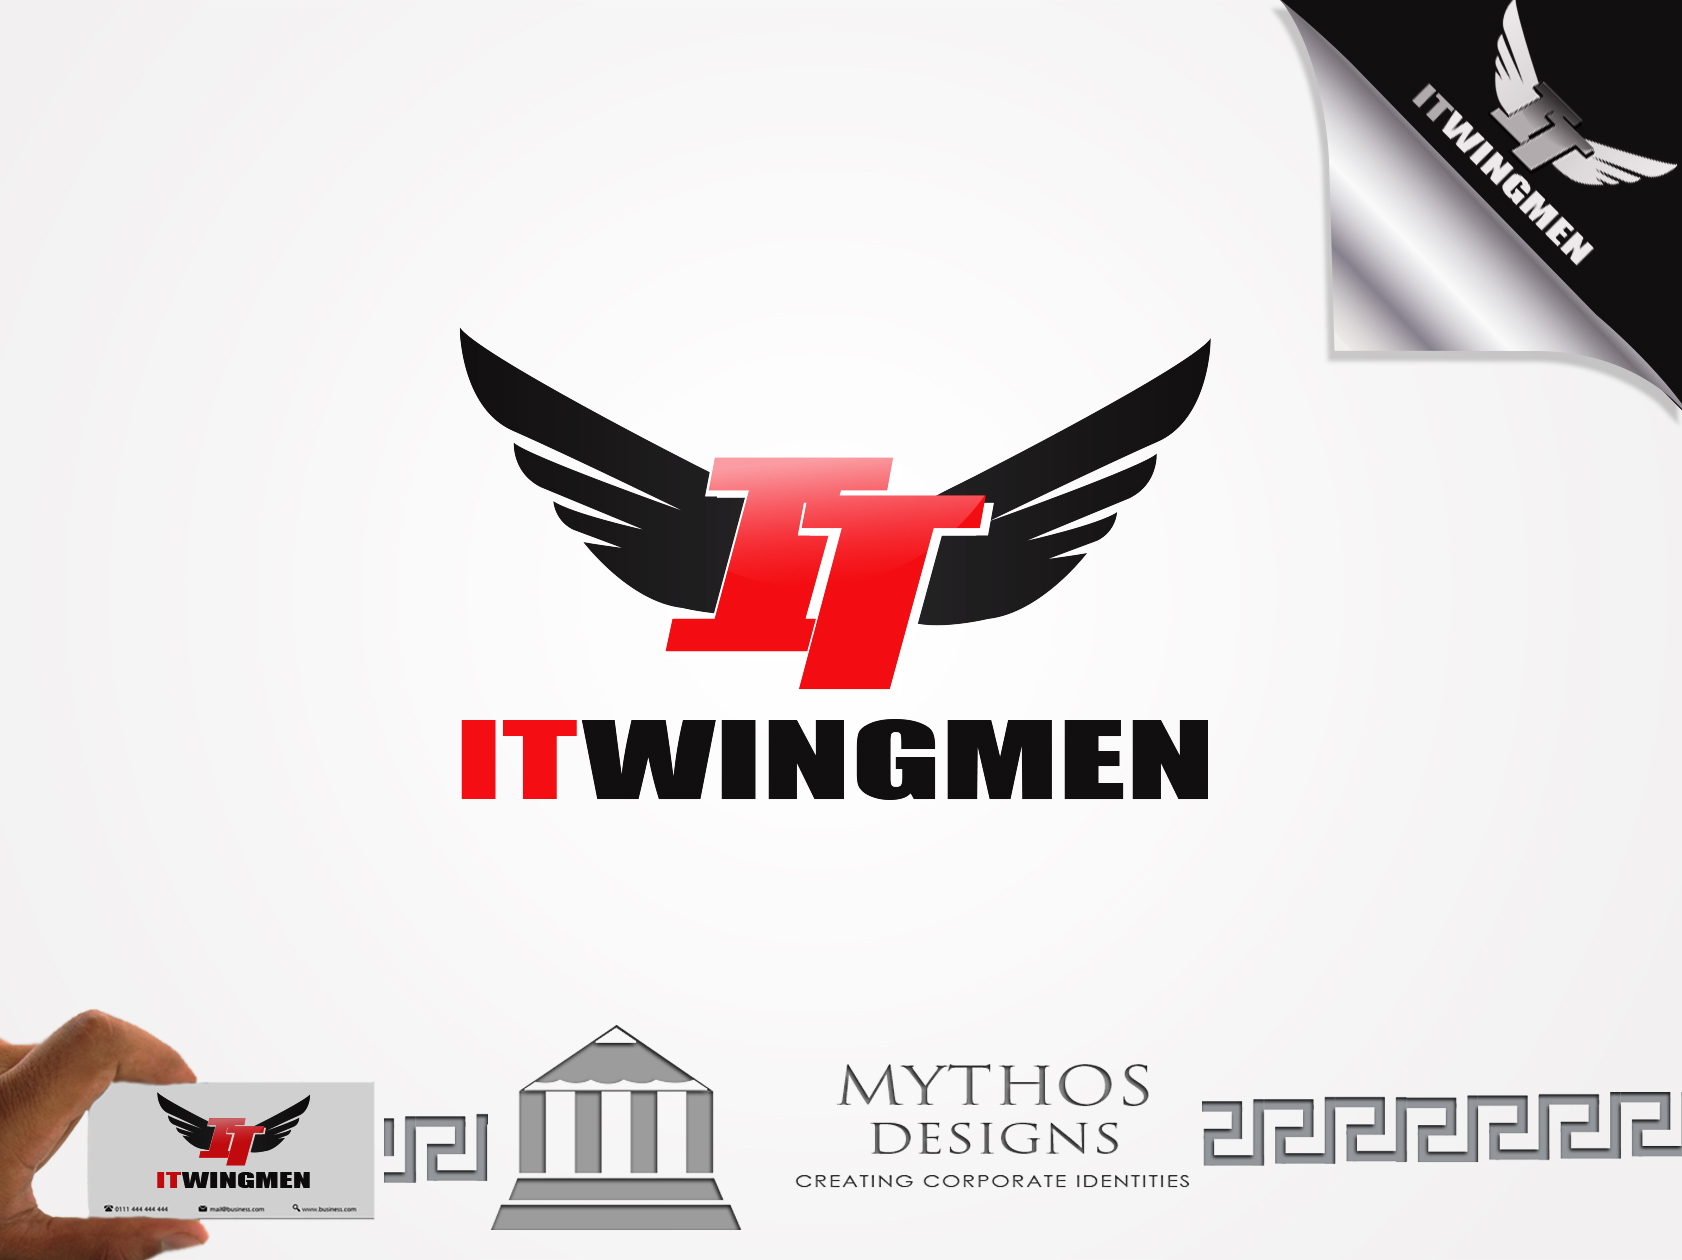 Logo Design by Mythos Designs - Entry No. 67 in the Logo Design Contest New Logo Design for IT Wingmen.